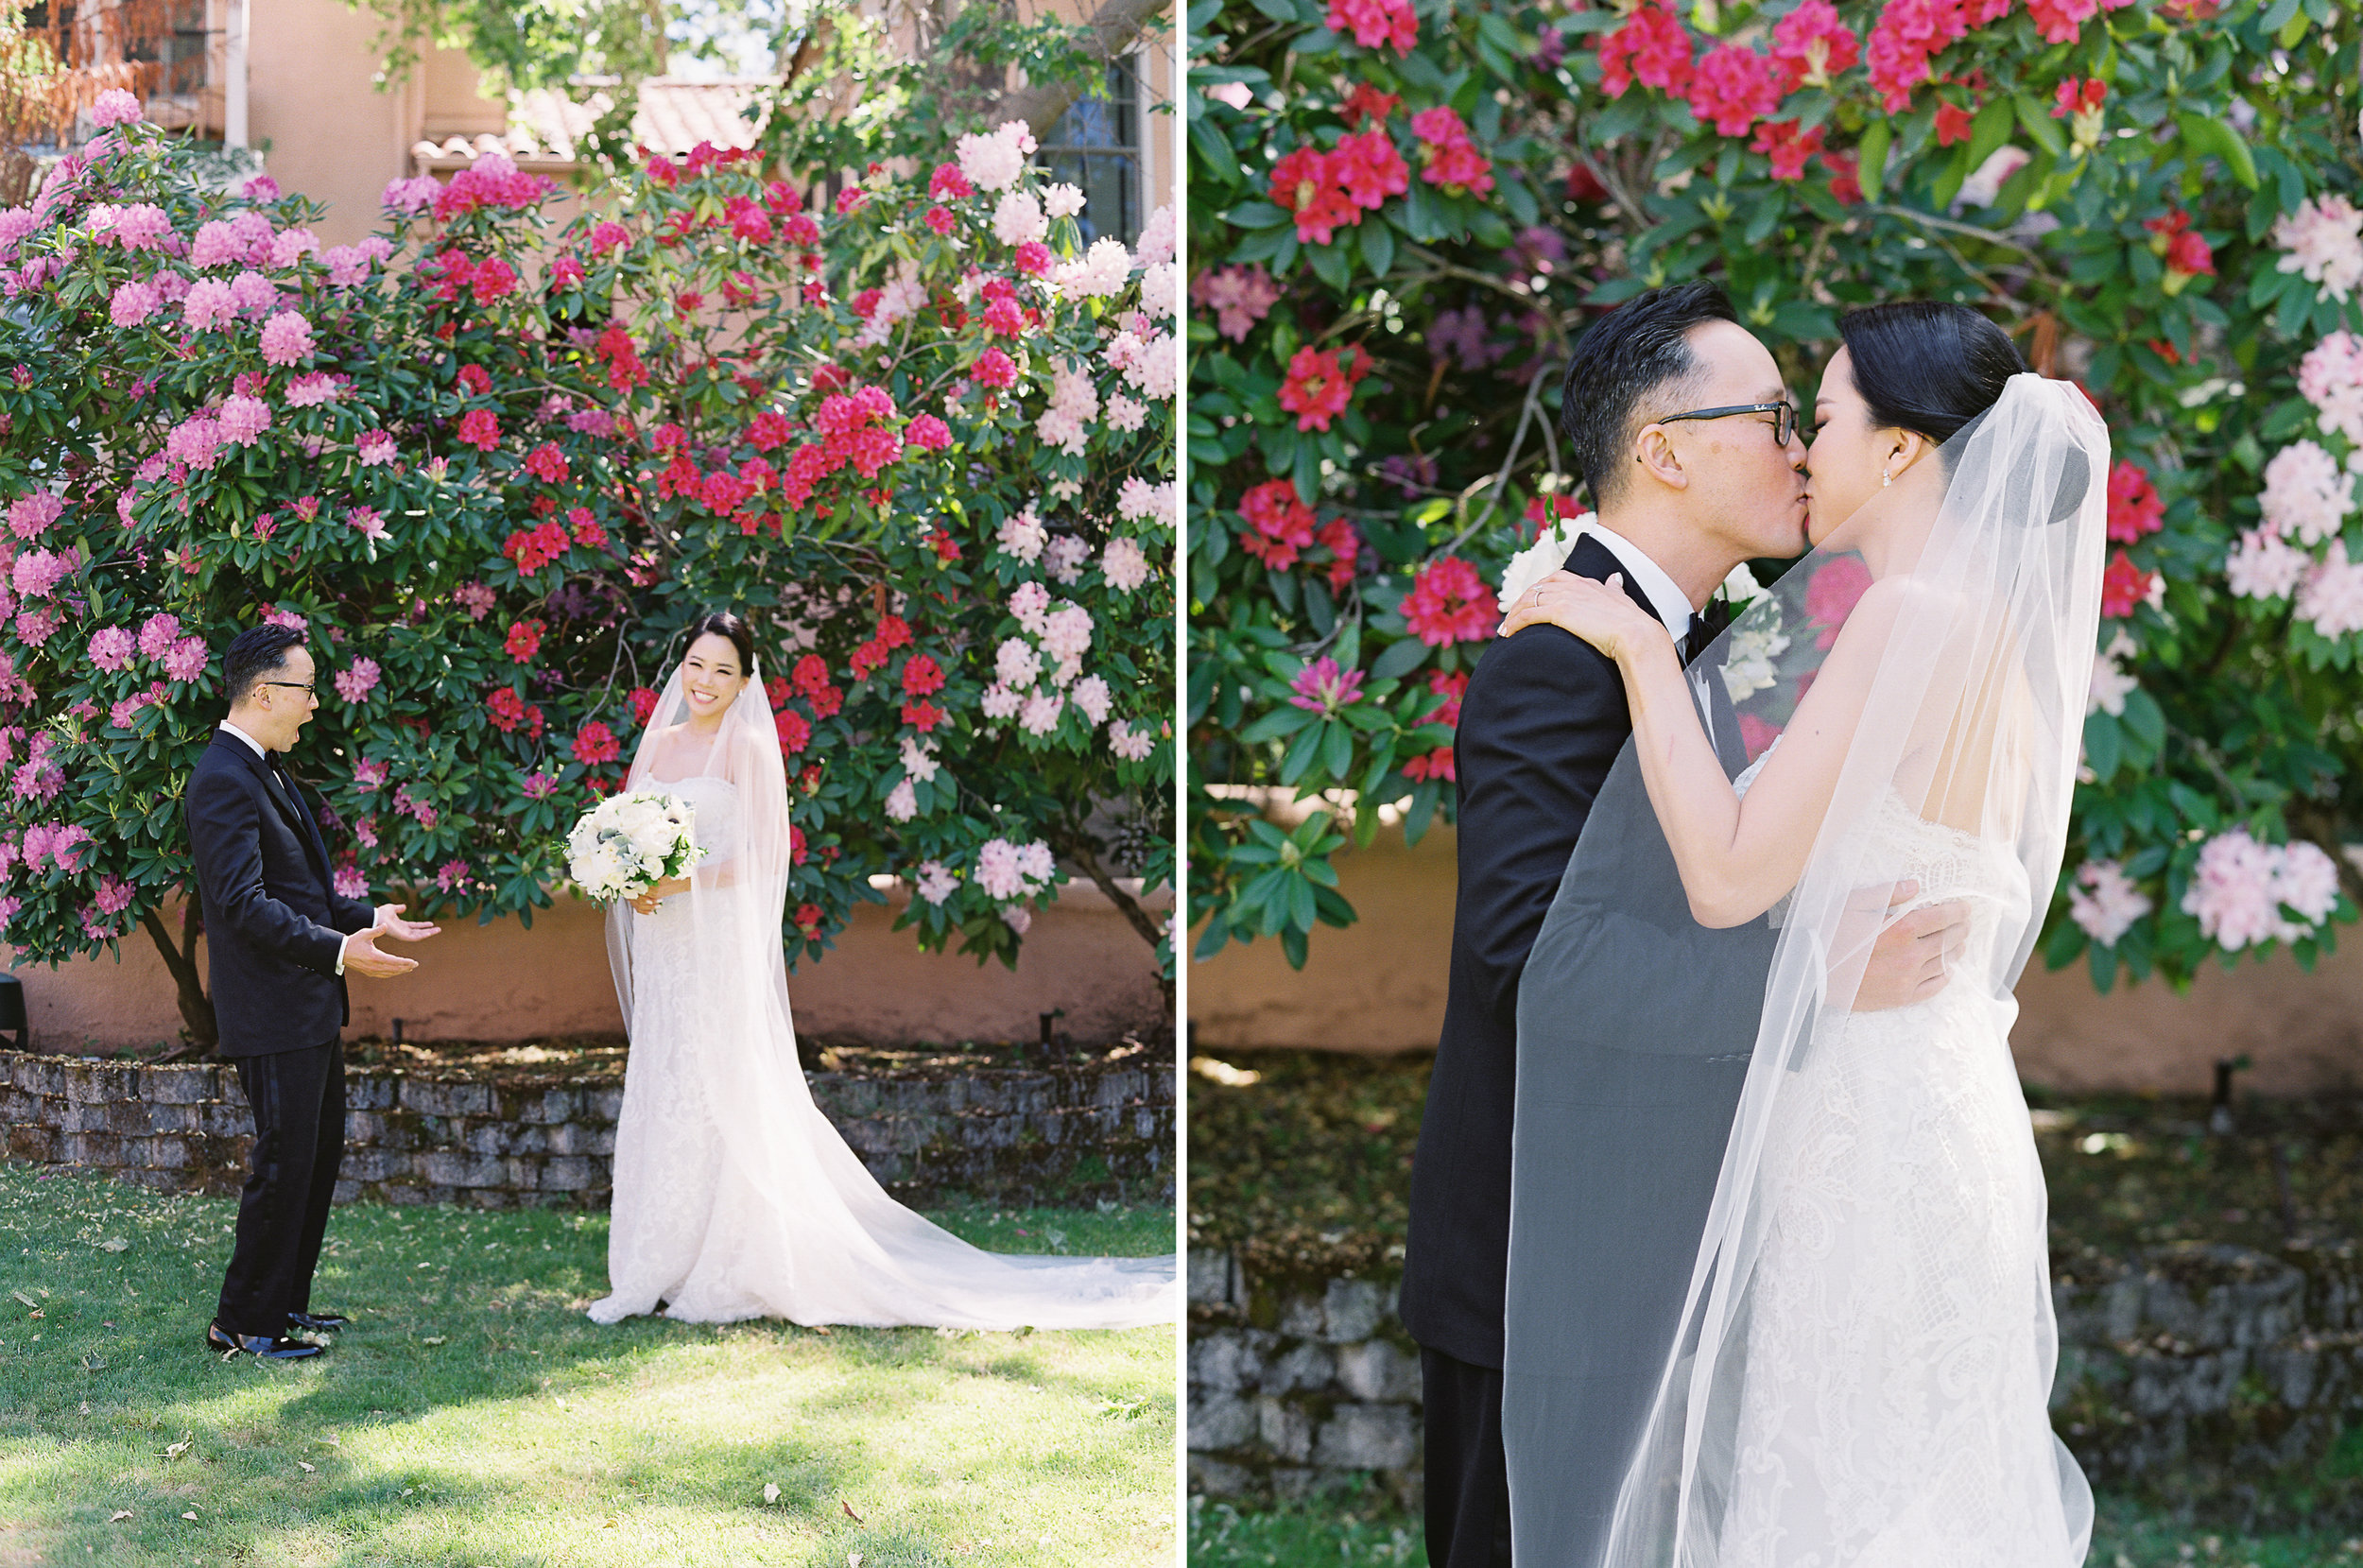 Meghan Mehan Photography - Sonoma Golf Club Wedding - California Film Wedding Photographer - 015.jpg